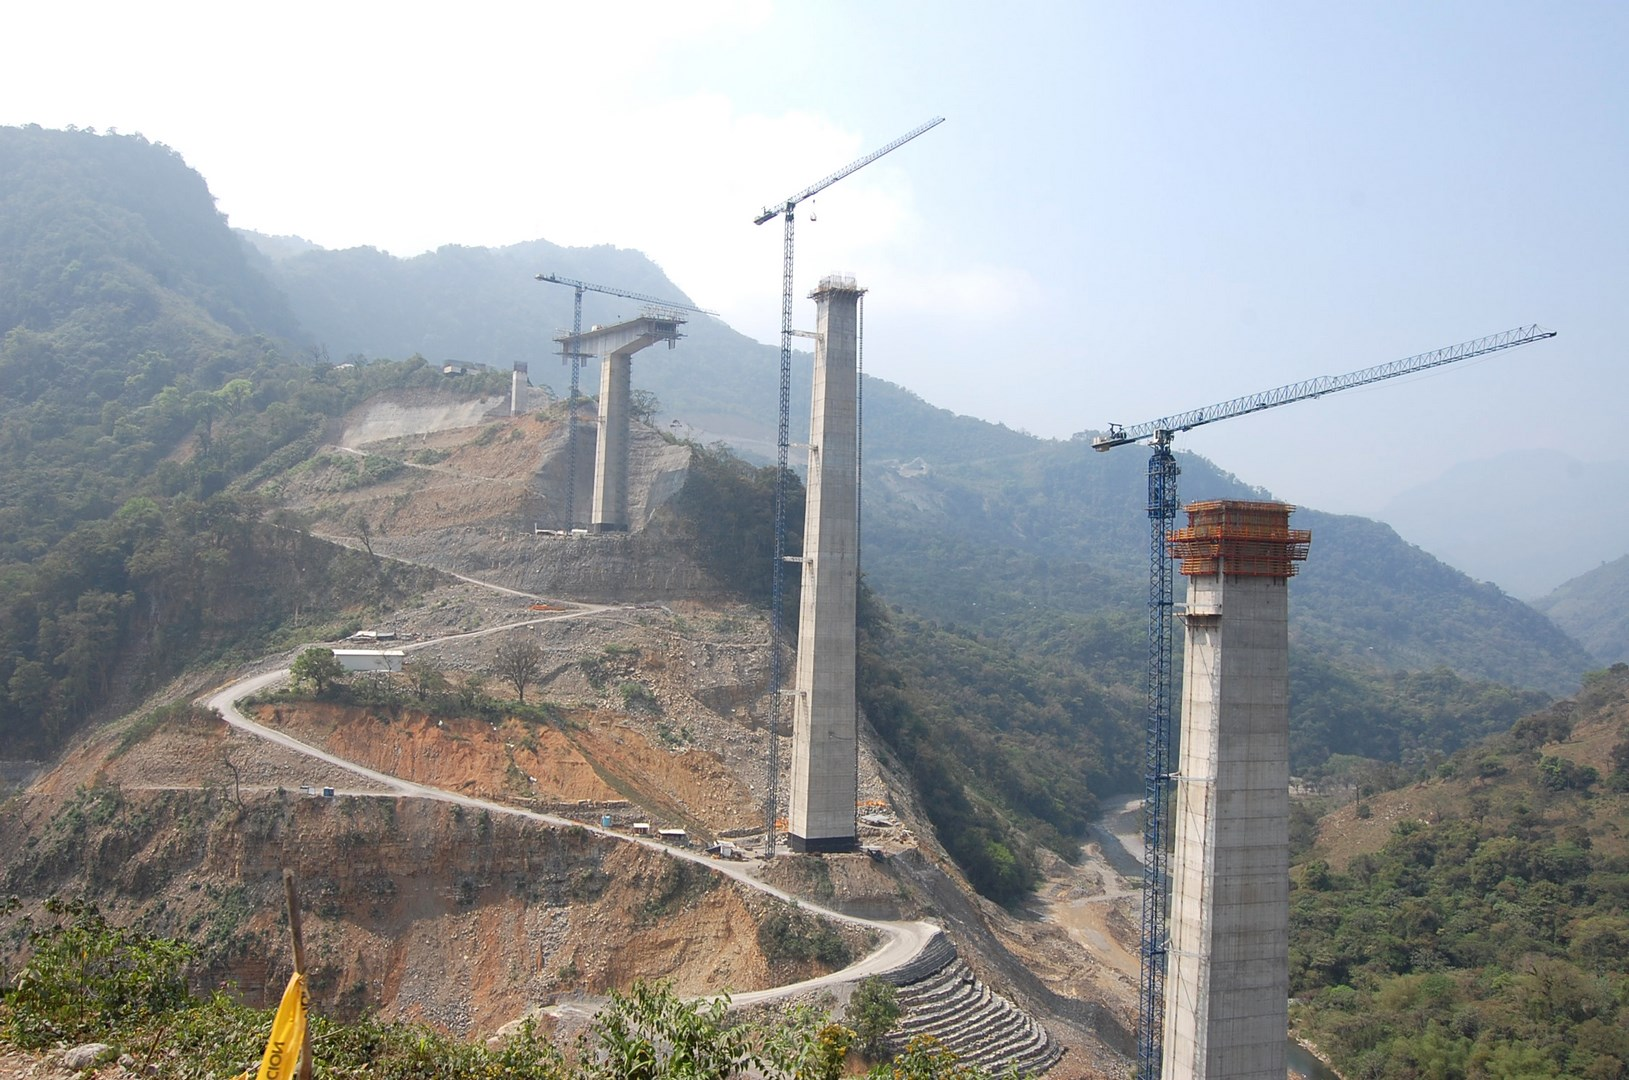 Construction works for the San Marcos Viaduct